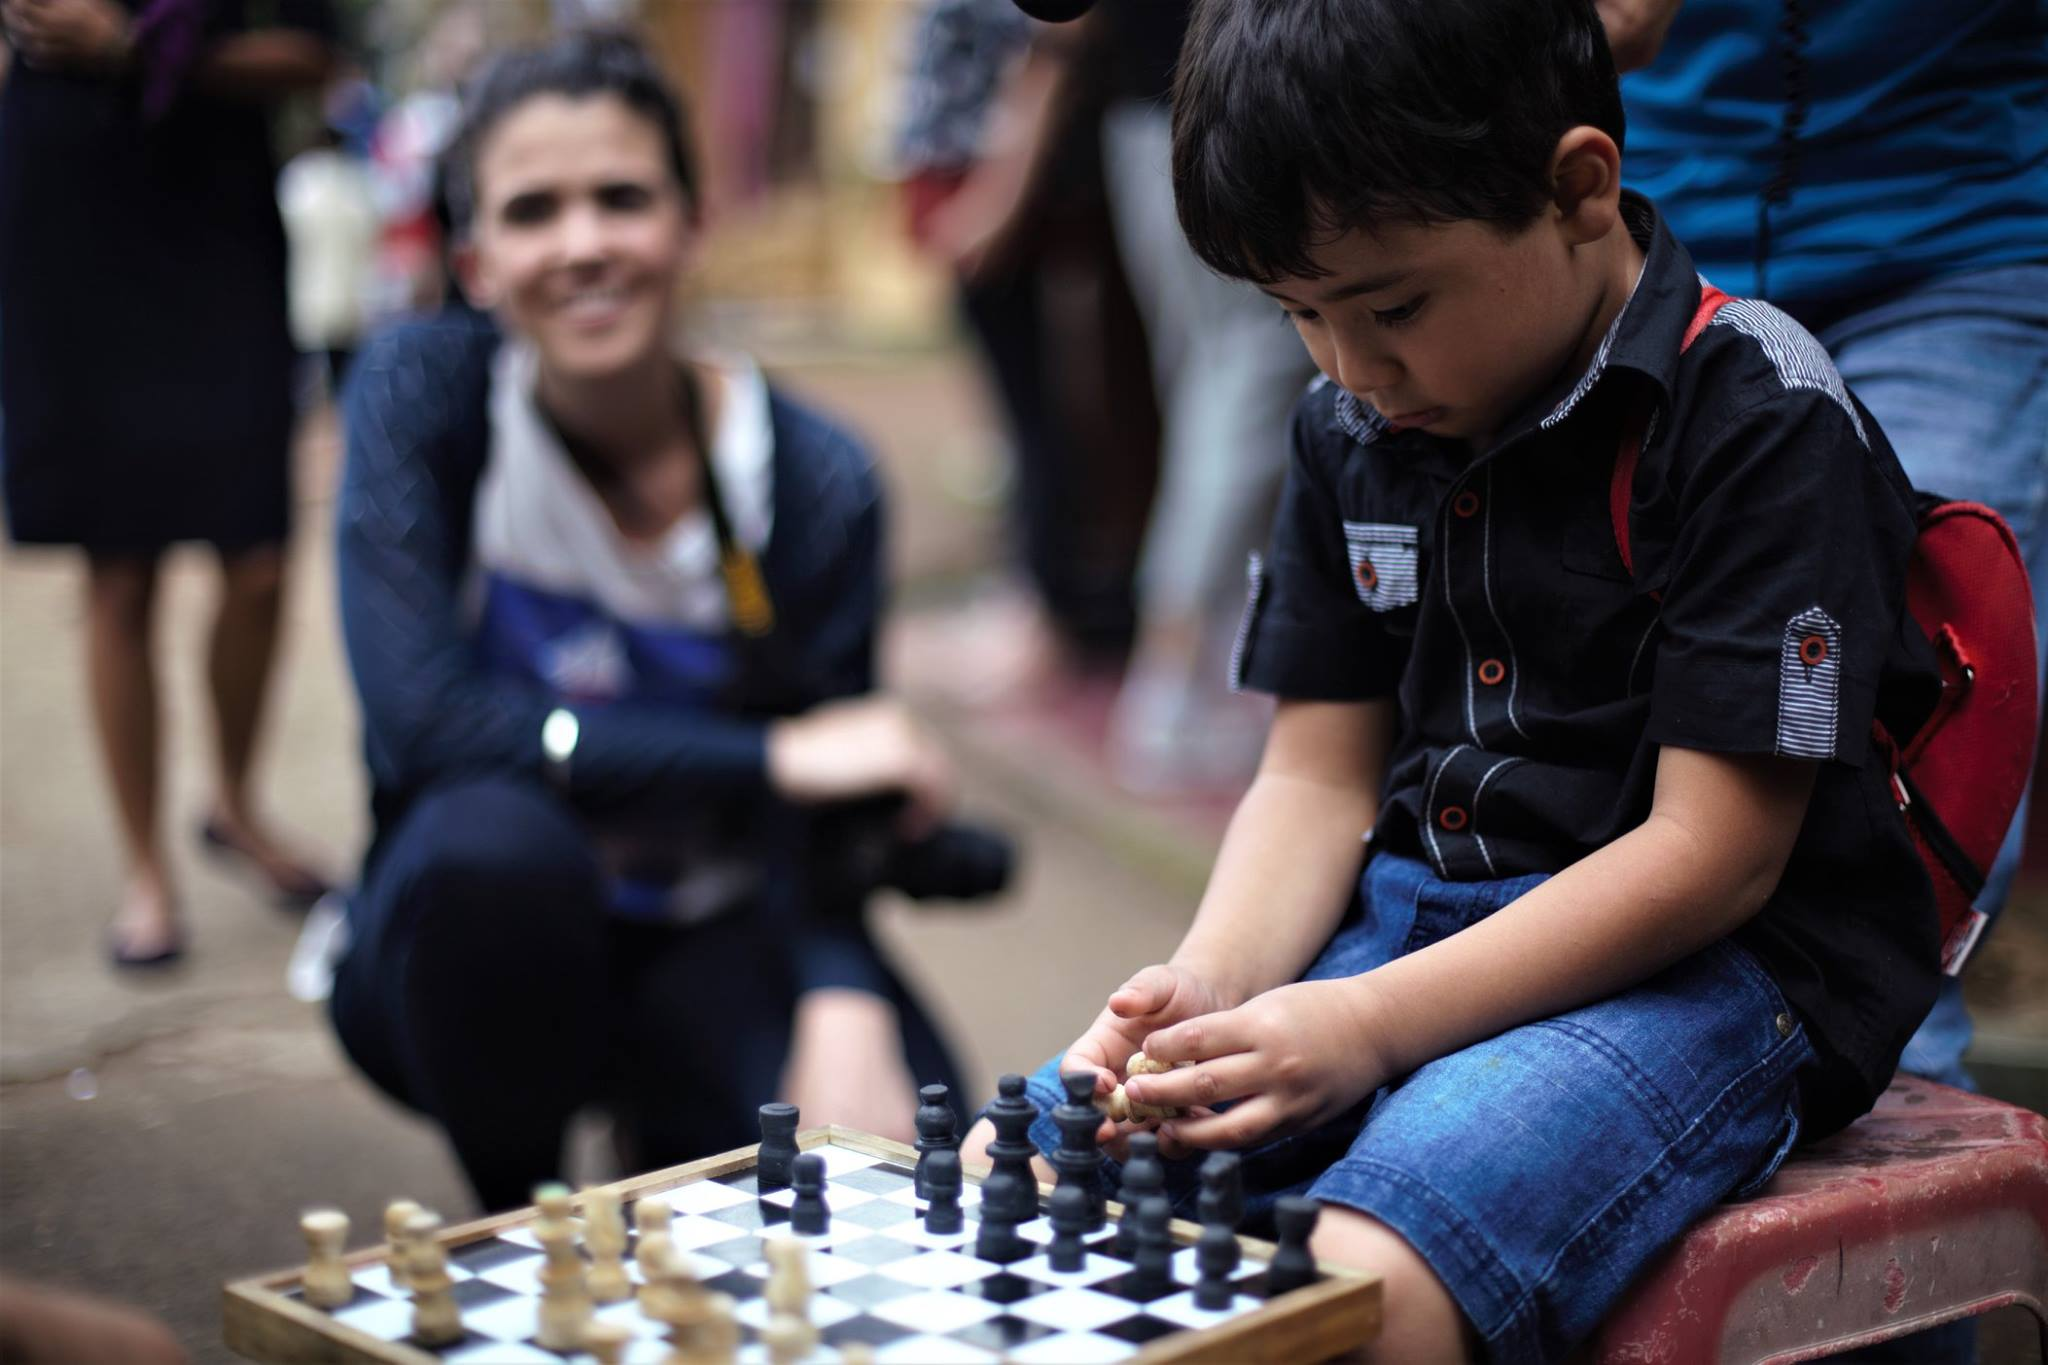 When this young chap, proved to be a tough chess openent for a university student from Australia. Such lovely moment in the film.